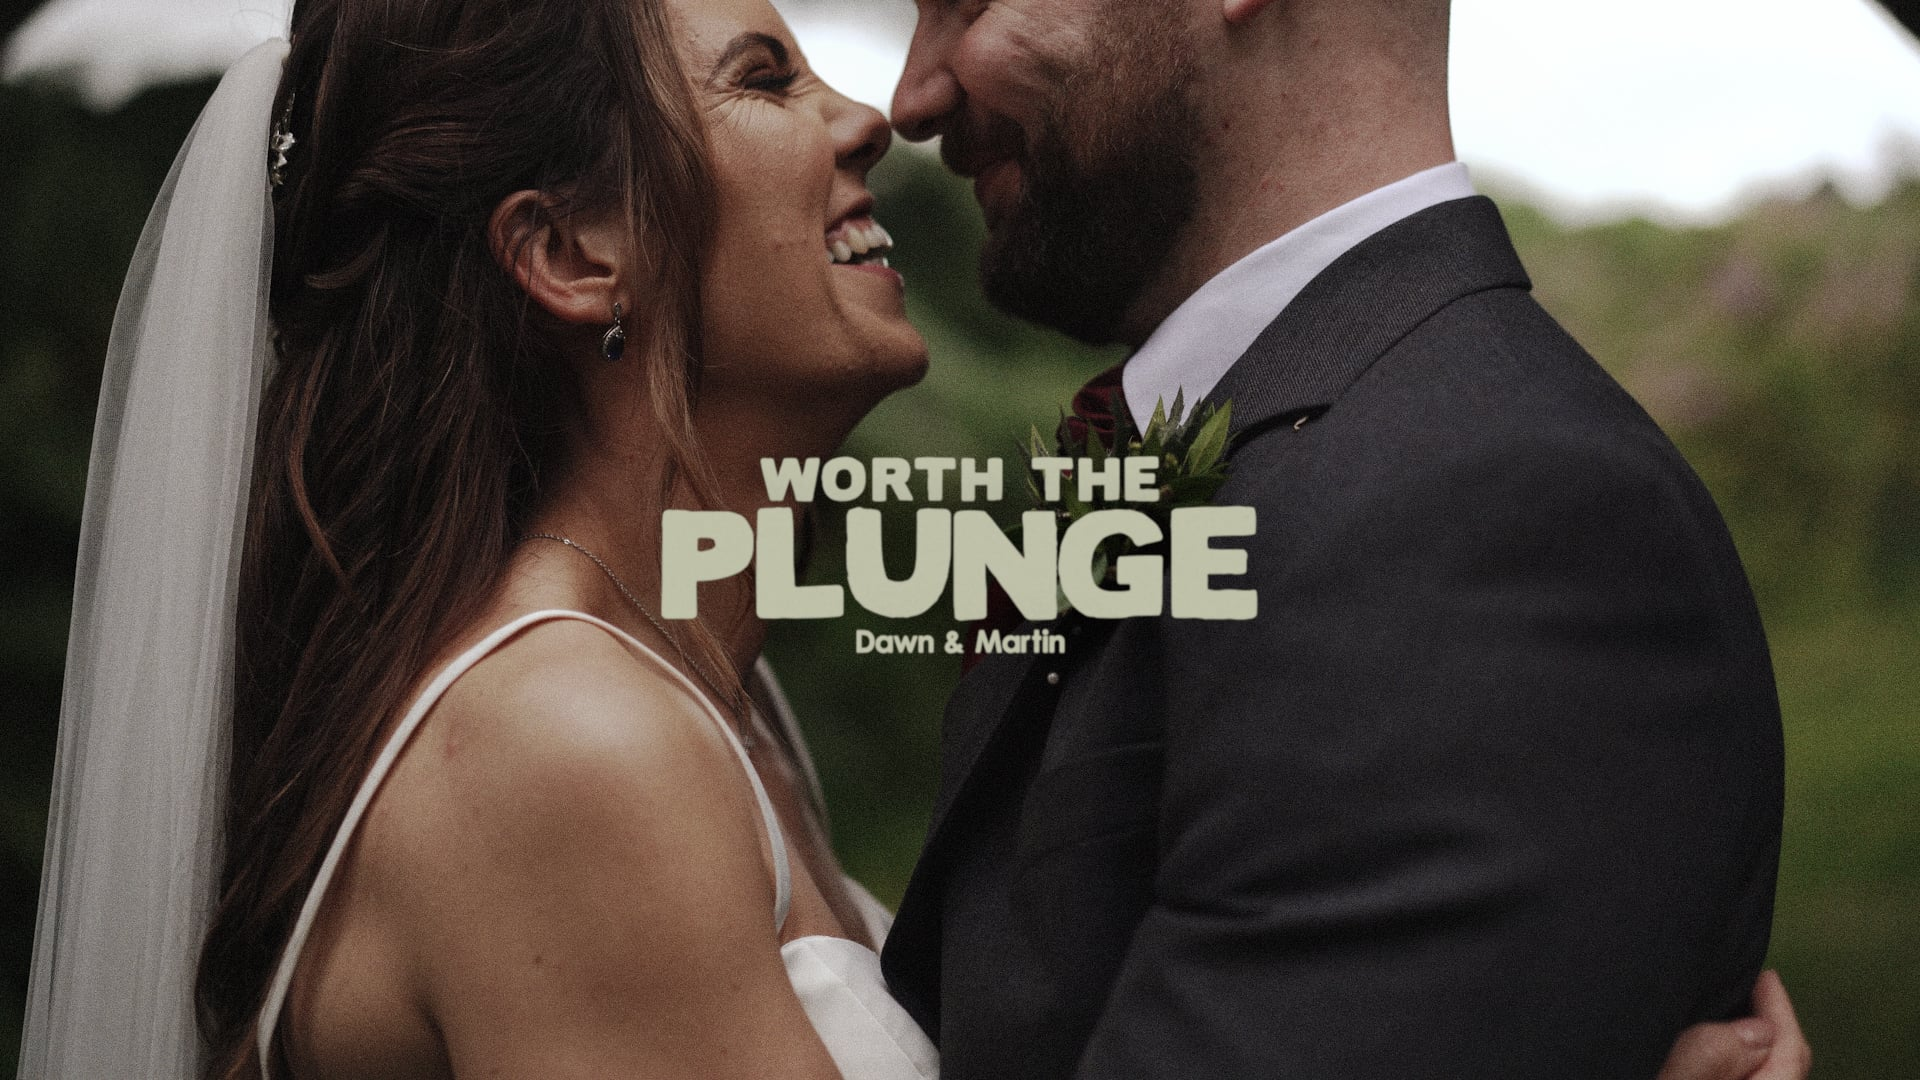 Worth the Plunge by Dawn and Martin